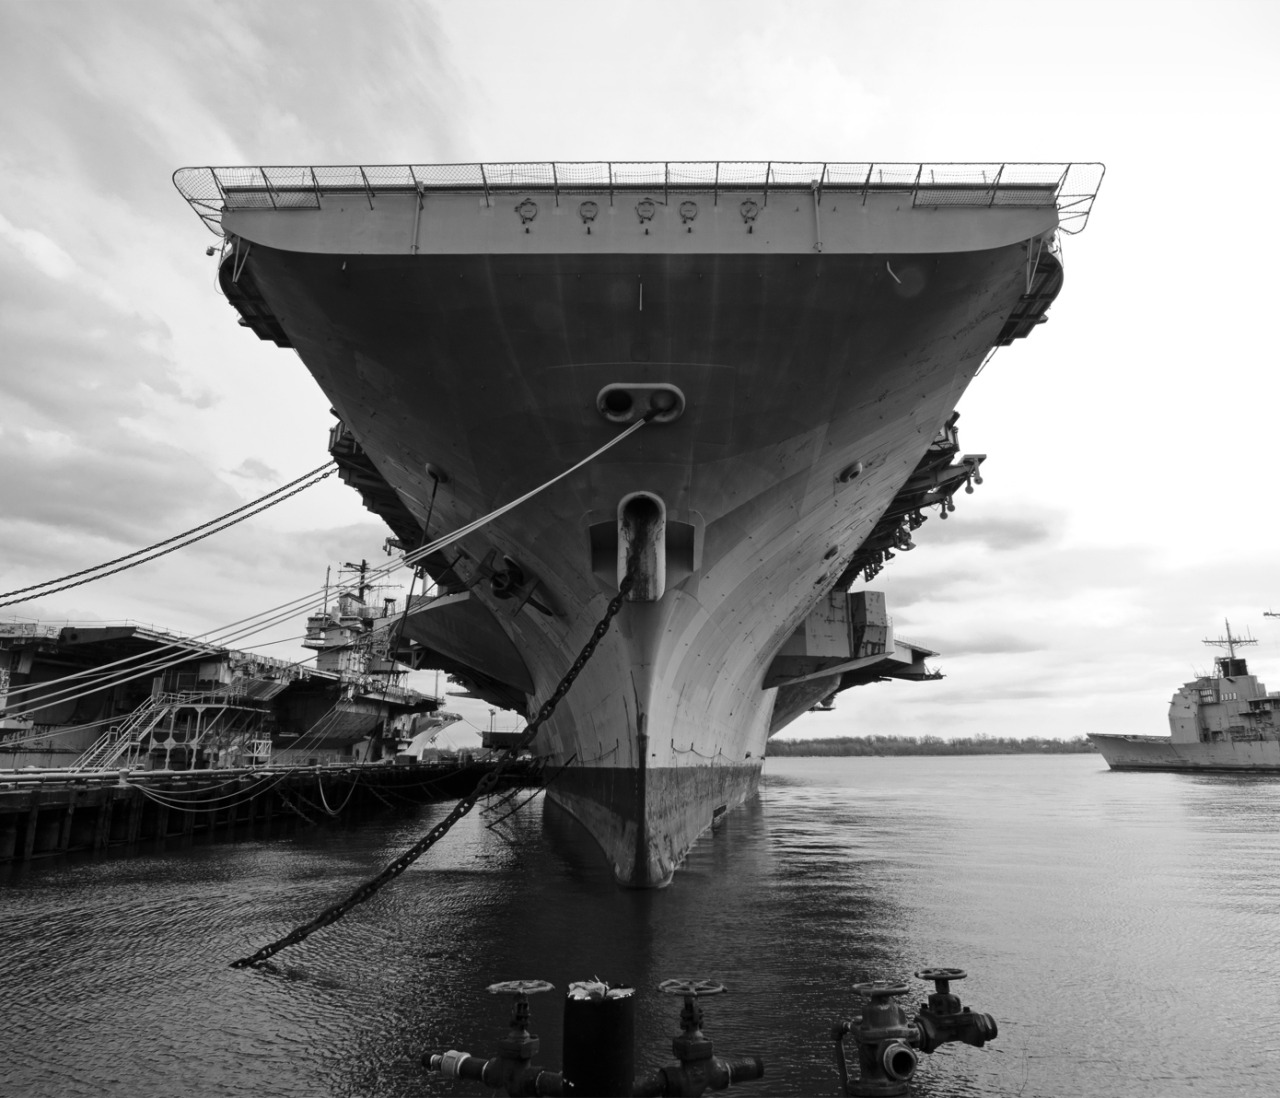 retired aircraft carrier JFK, philadelphia navy ship yard, 2013